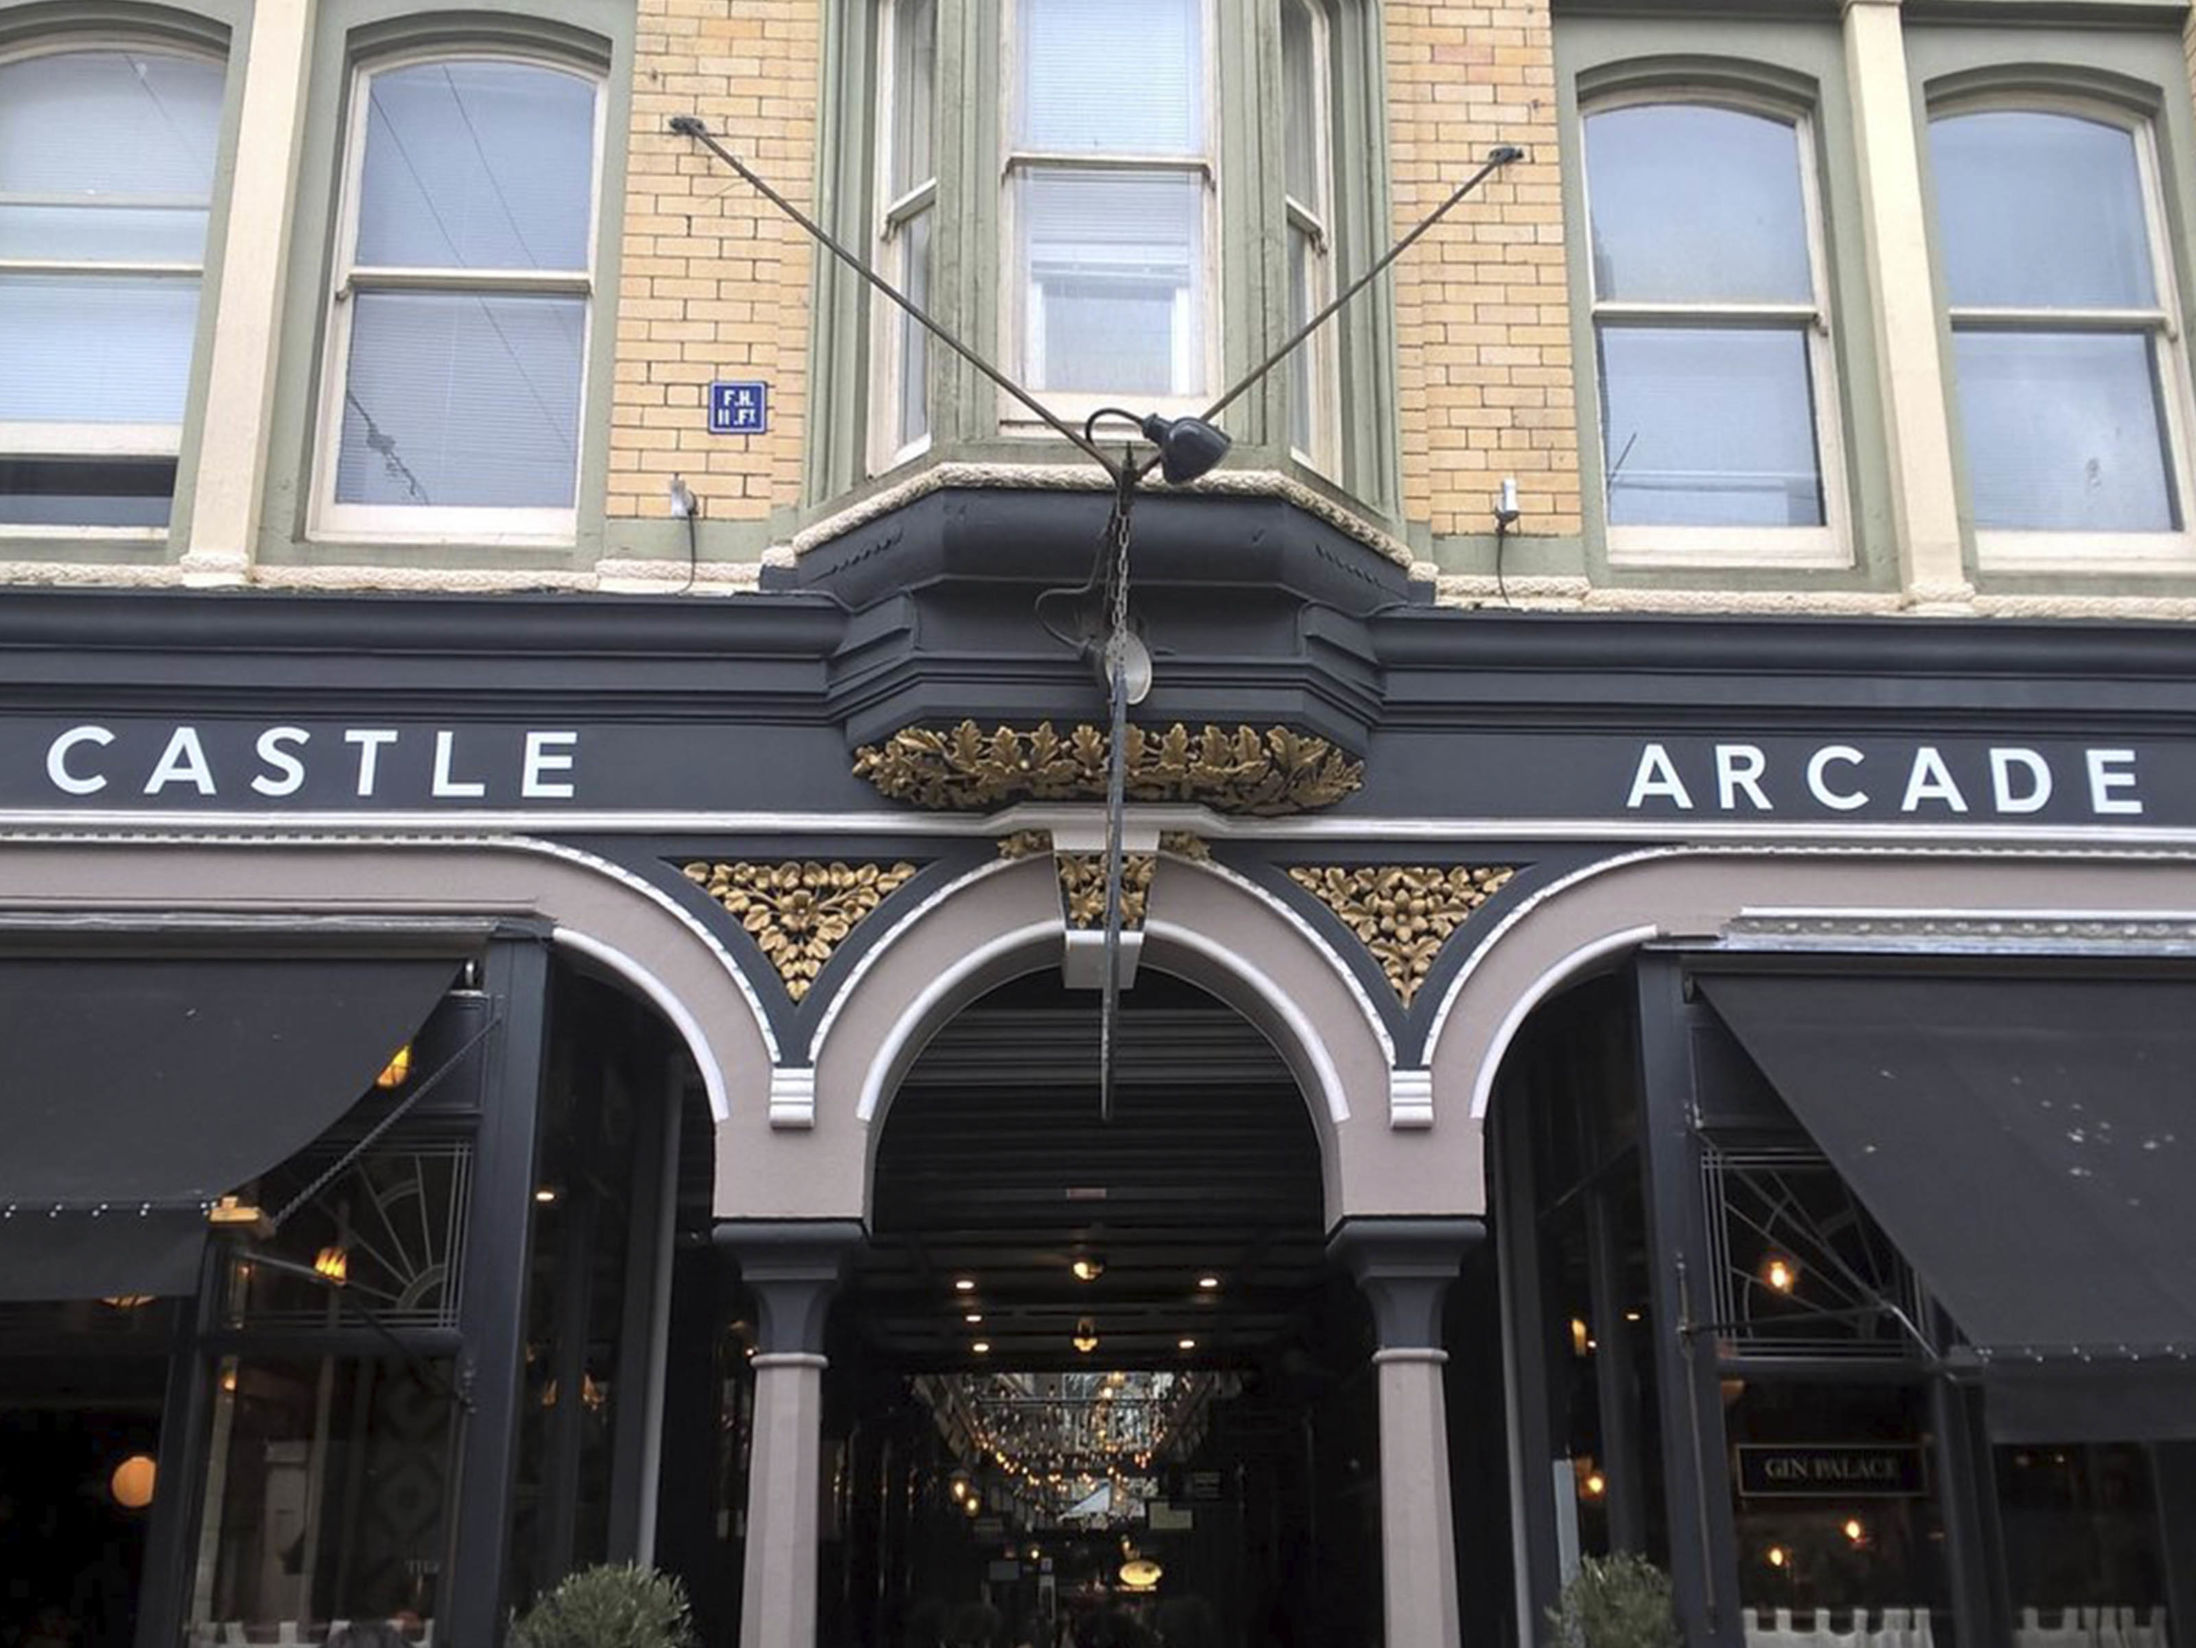 Things to do in Cardiff - Castle Arcade, The Castle Quarter